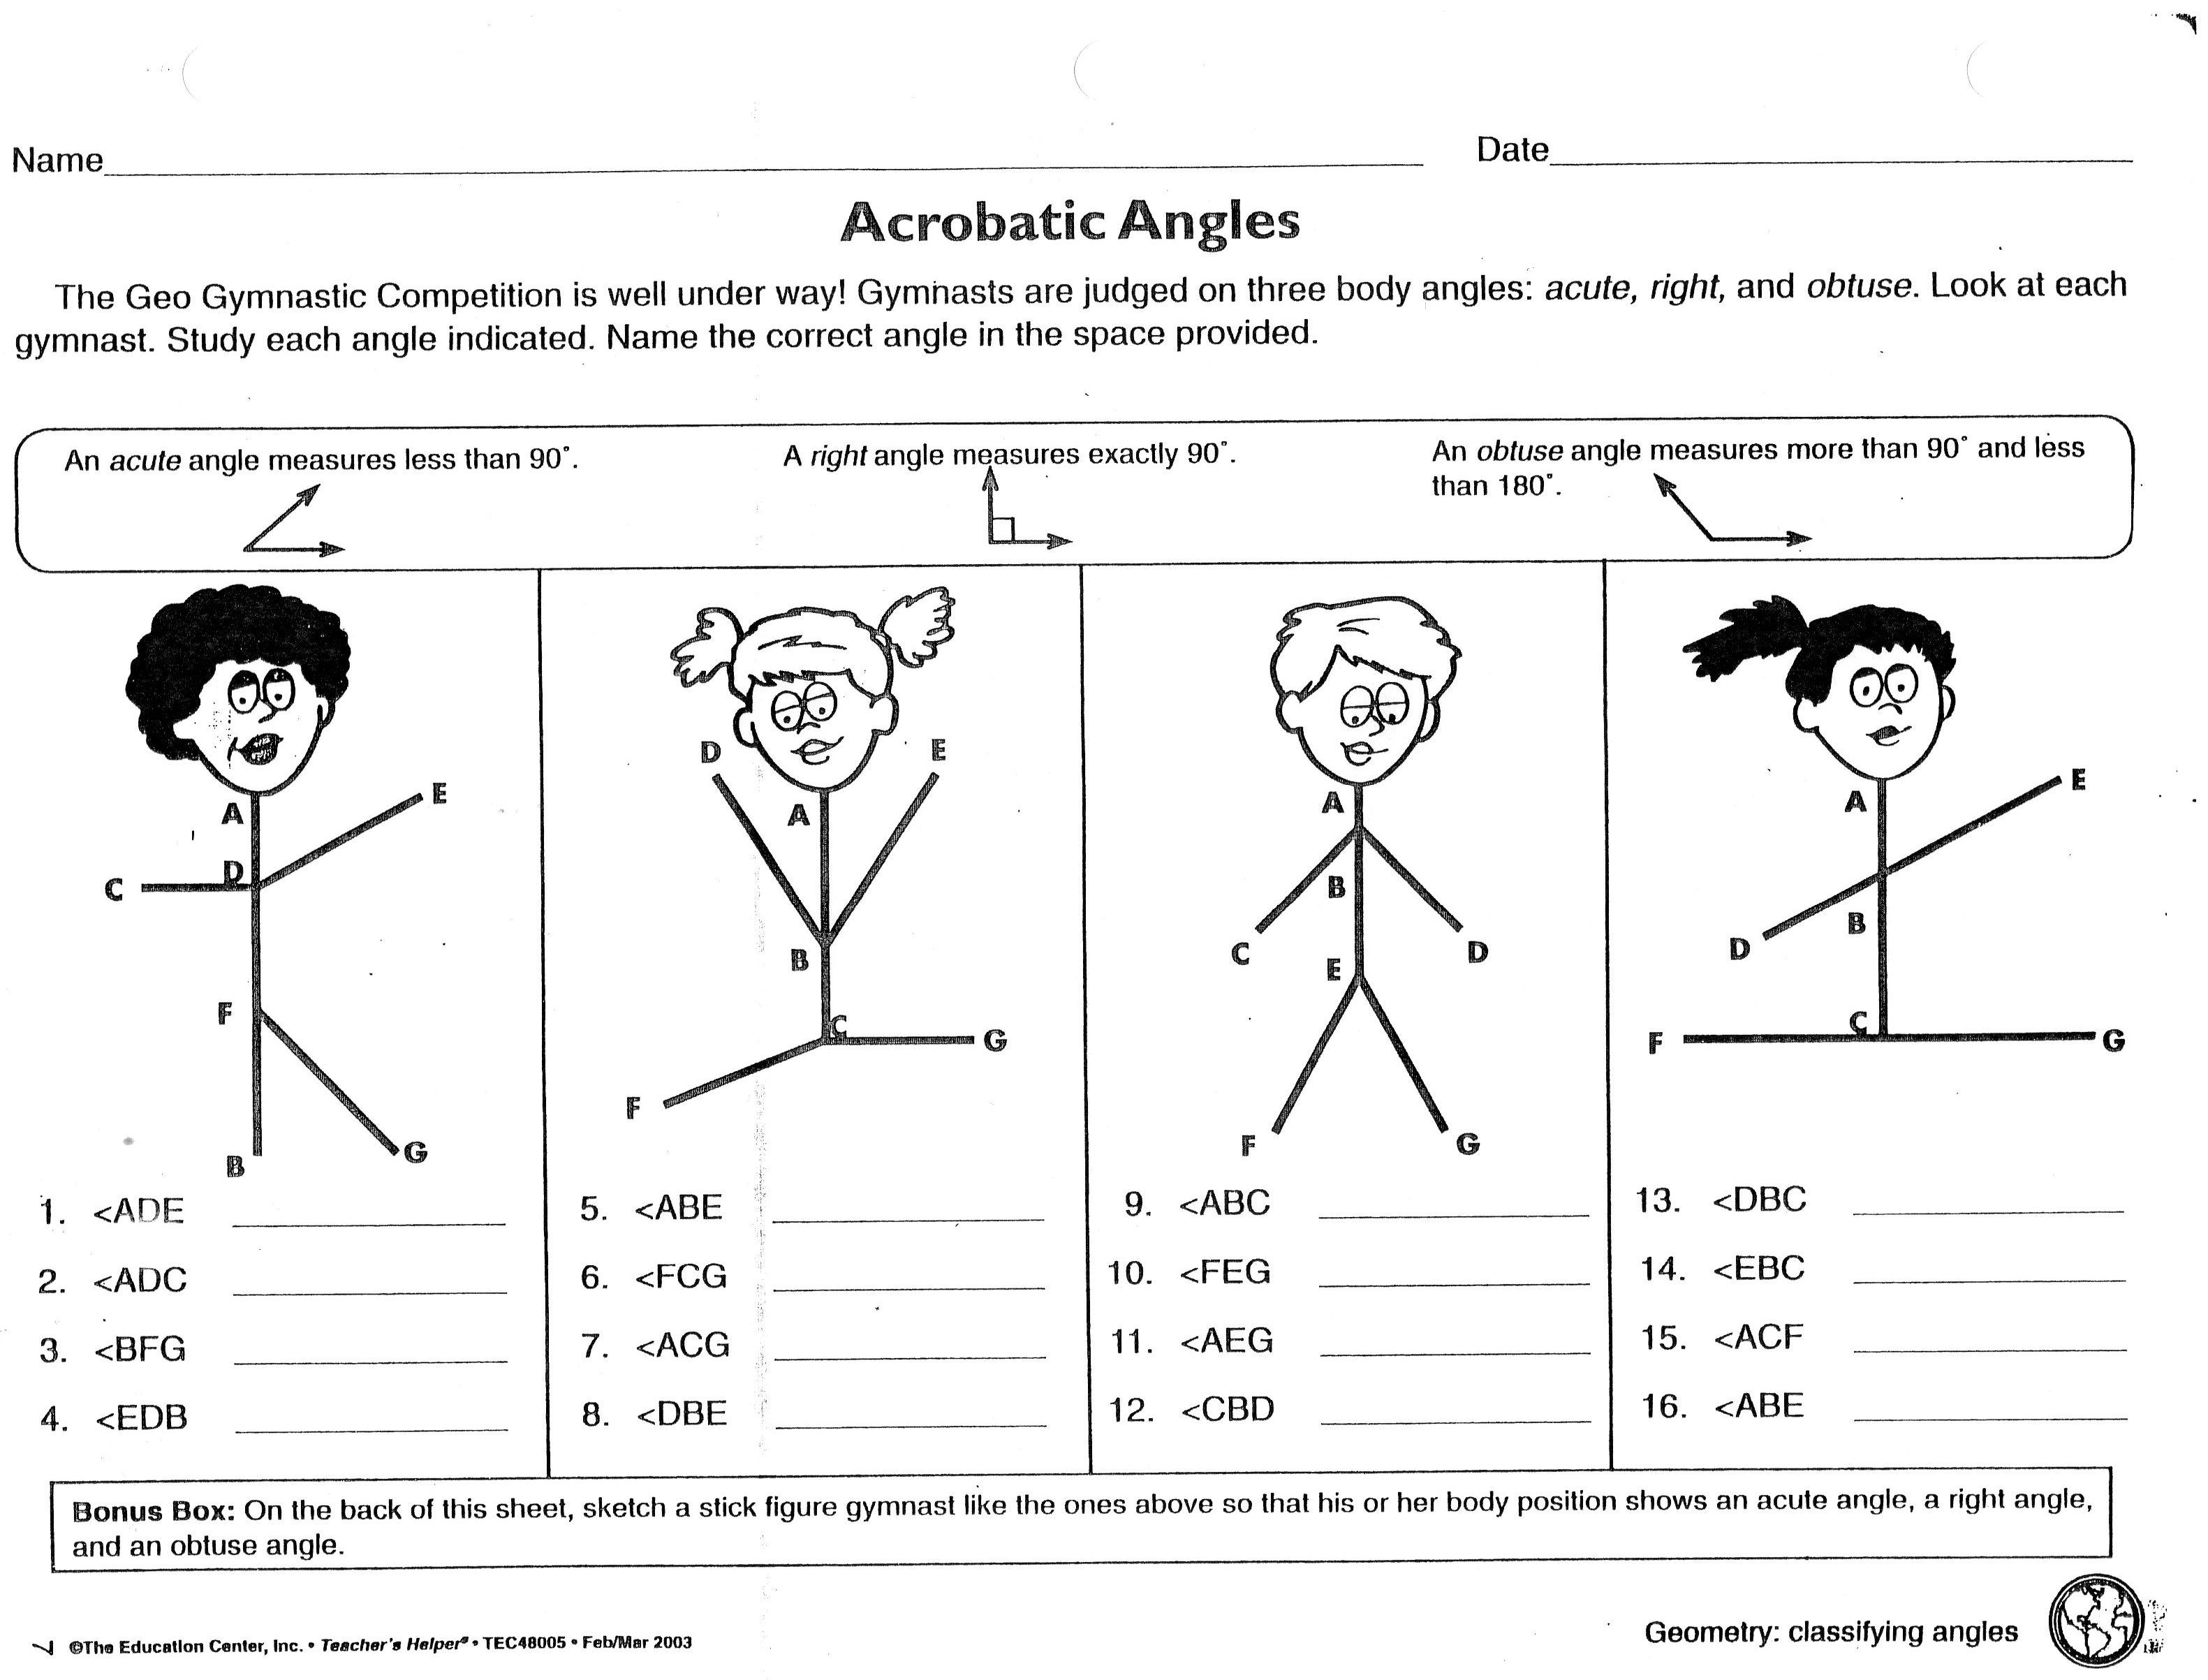 hight resolution of acrobatic angles worksheet obtuse acute right michael jordan was math gr -  Criabooks : Criabooks   Angles worksheet